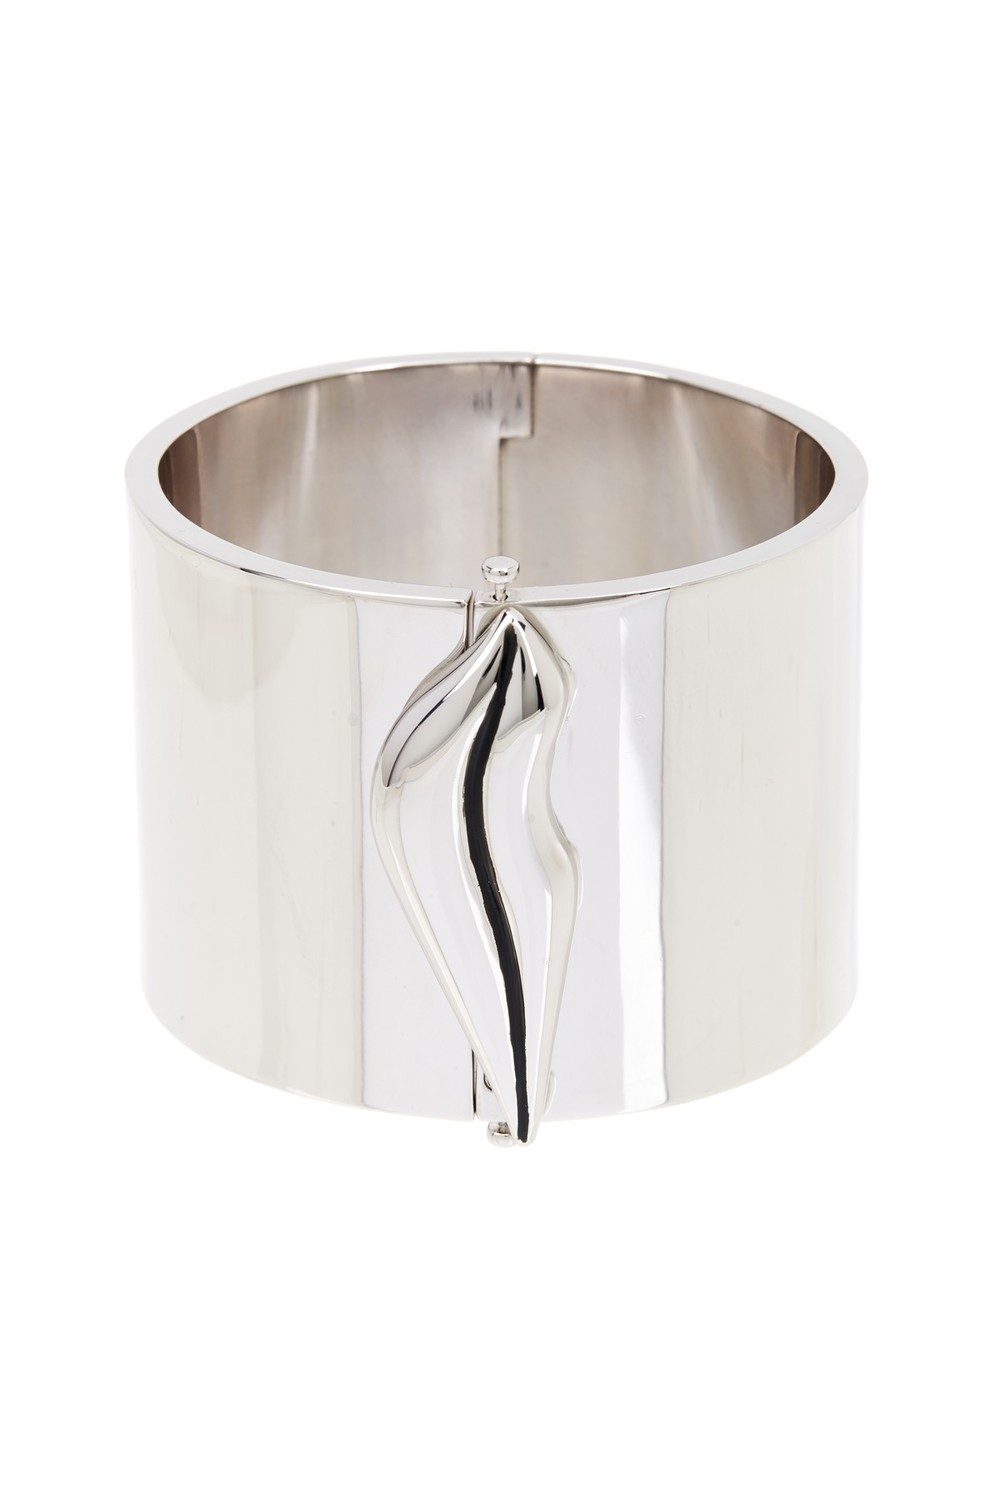 Diane von Furstenberg Petra Lip Wide Bangle. Also on the site in gold. Nordstrom Rack. Was: $198 Now: $79.